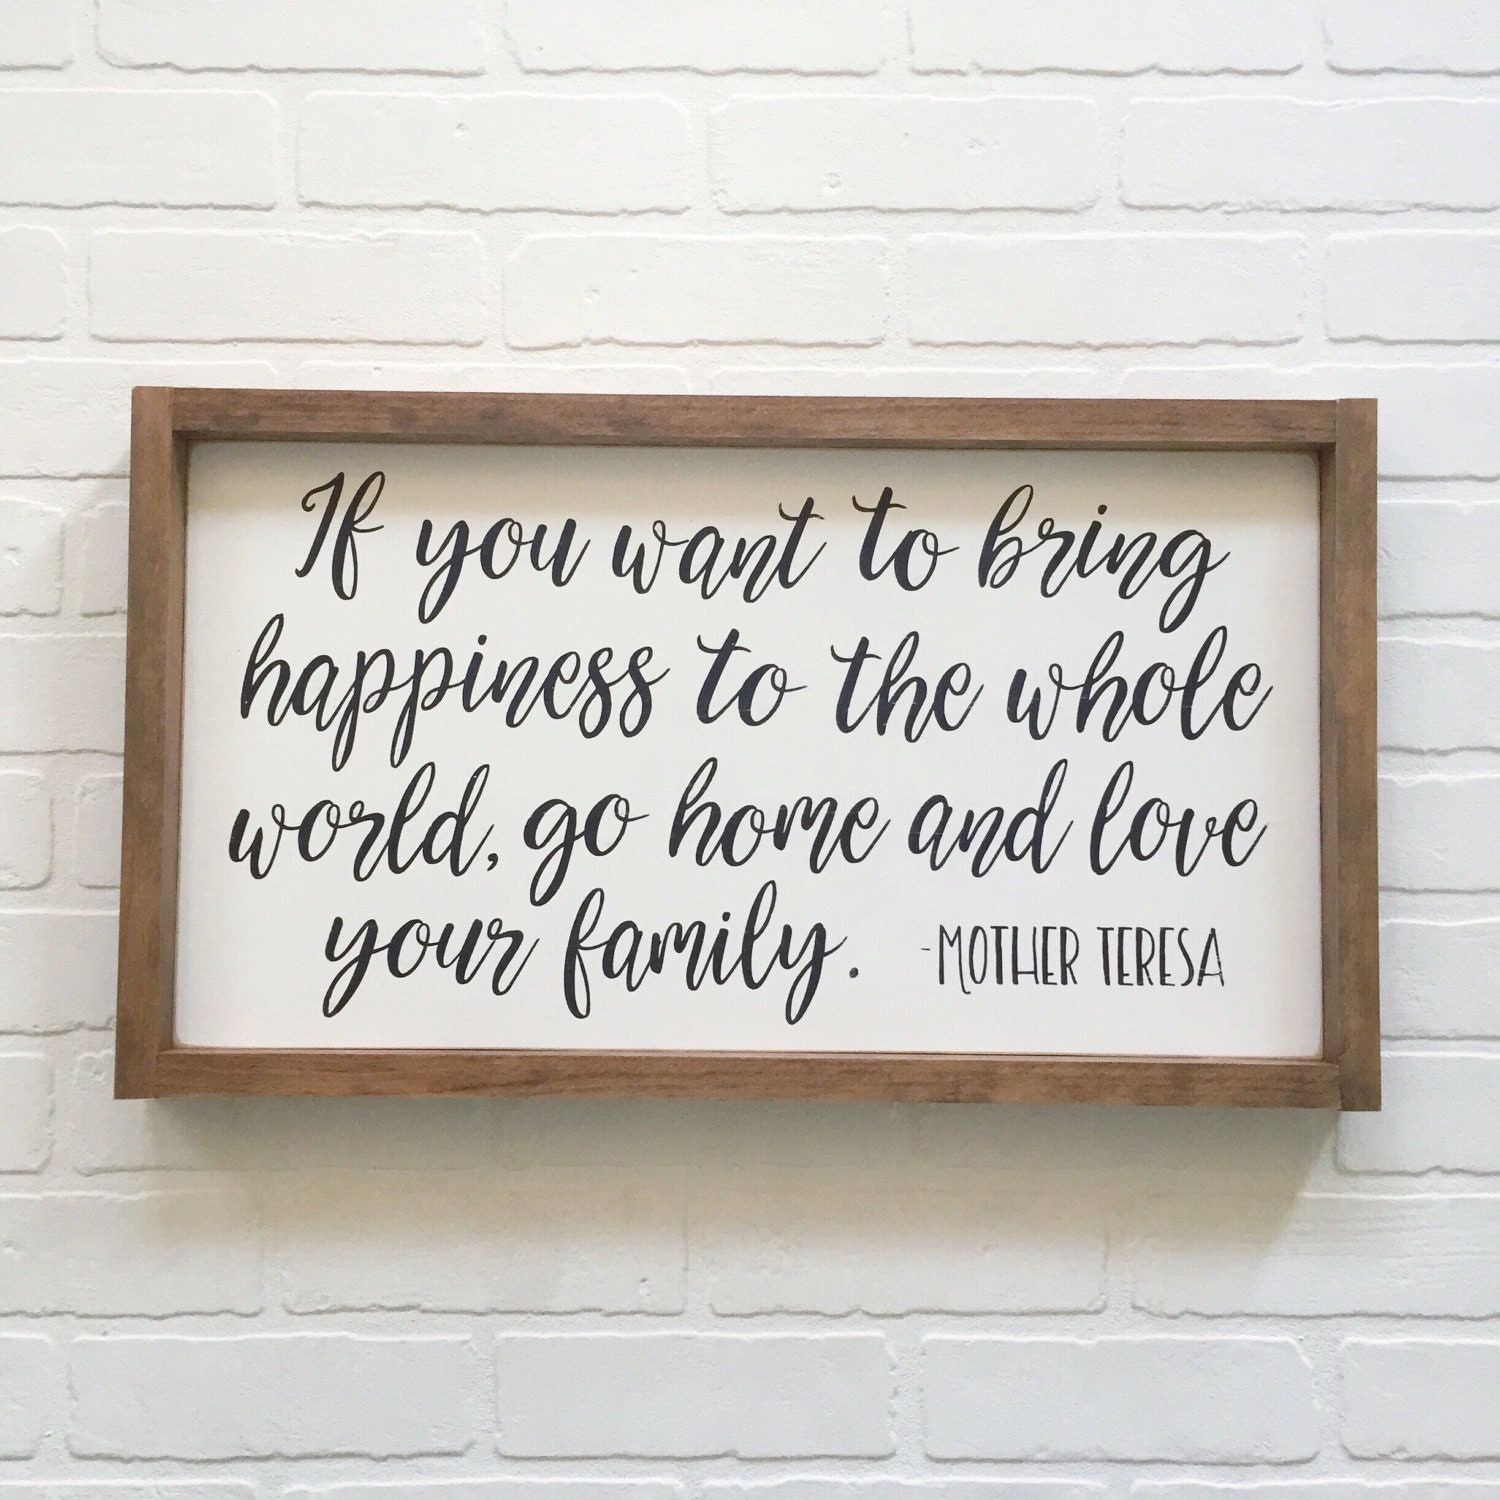 Inspirational Quotes On Wood: 13x24 Mother Teresa Quote Wood Sign Family By